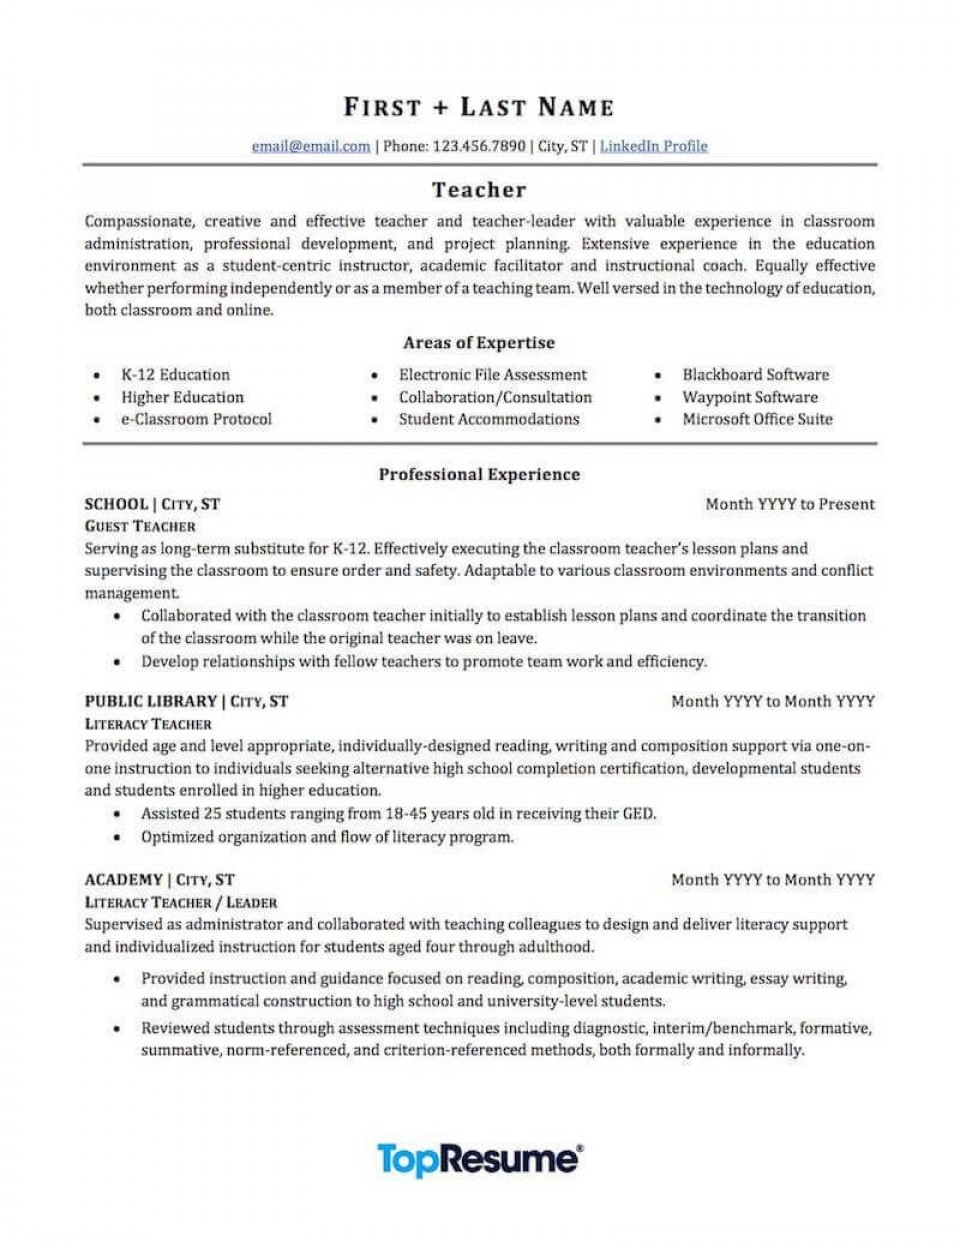 005 Awful Good Resume For Teaching Job High Resolution  Sample With Experience Pdf Fresher In India960